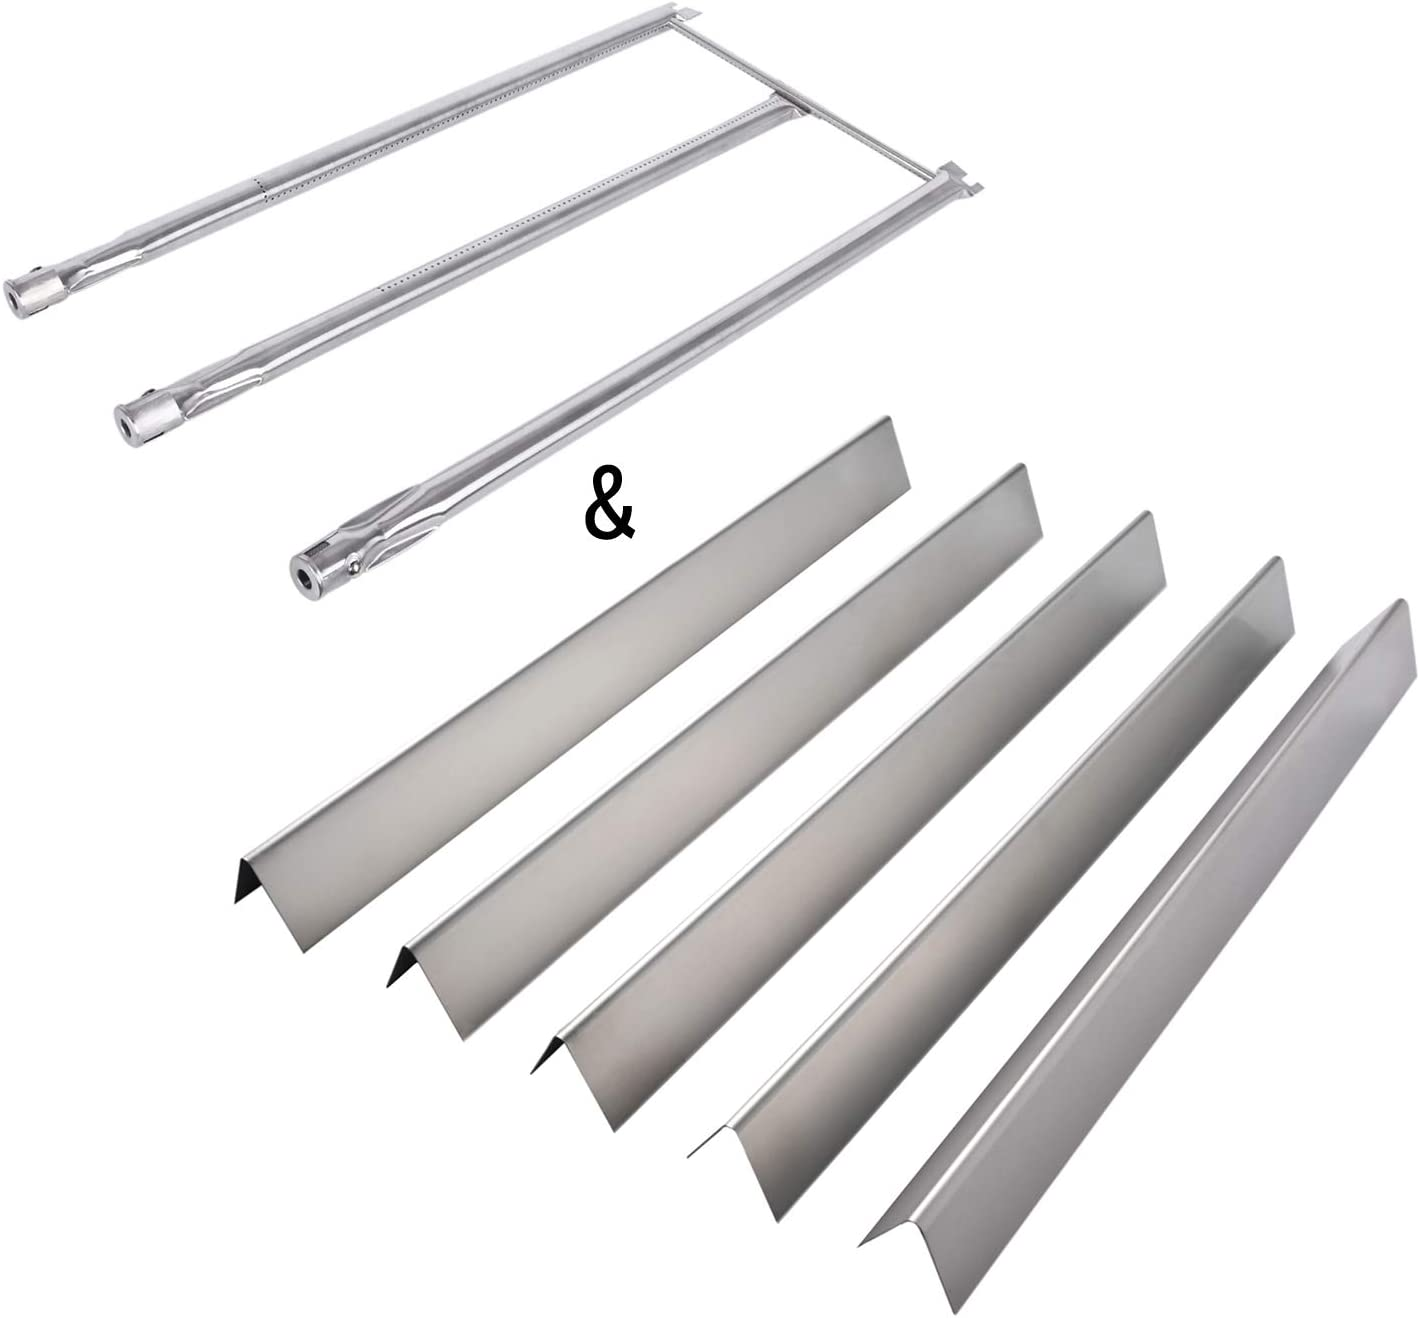 GasSaf 22.5 inch Flavorizer Bar and 28 1/8 inch Burner Tube Replacement for Weber 7536, 7508, Spirit E310 E320, Genesis Silver B C, Genesis Platinum B C, Weber 900 (with Side Control Knobs)